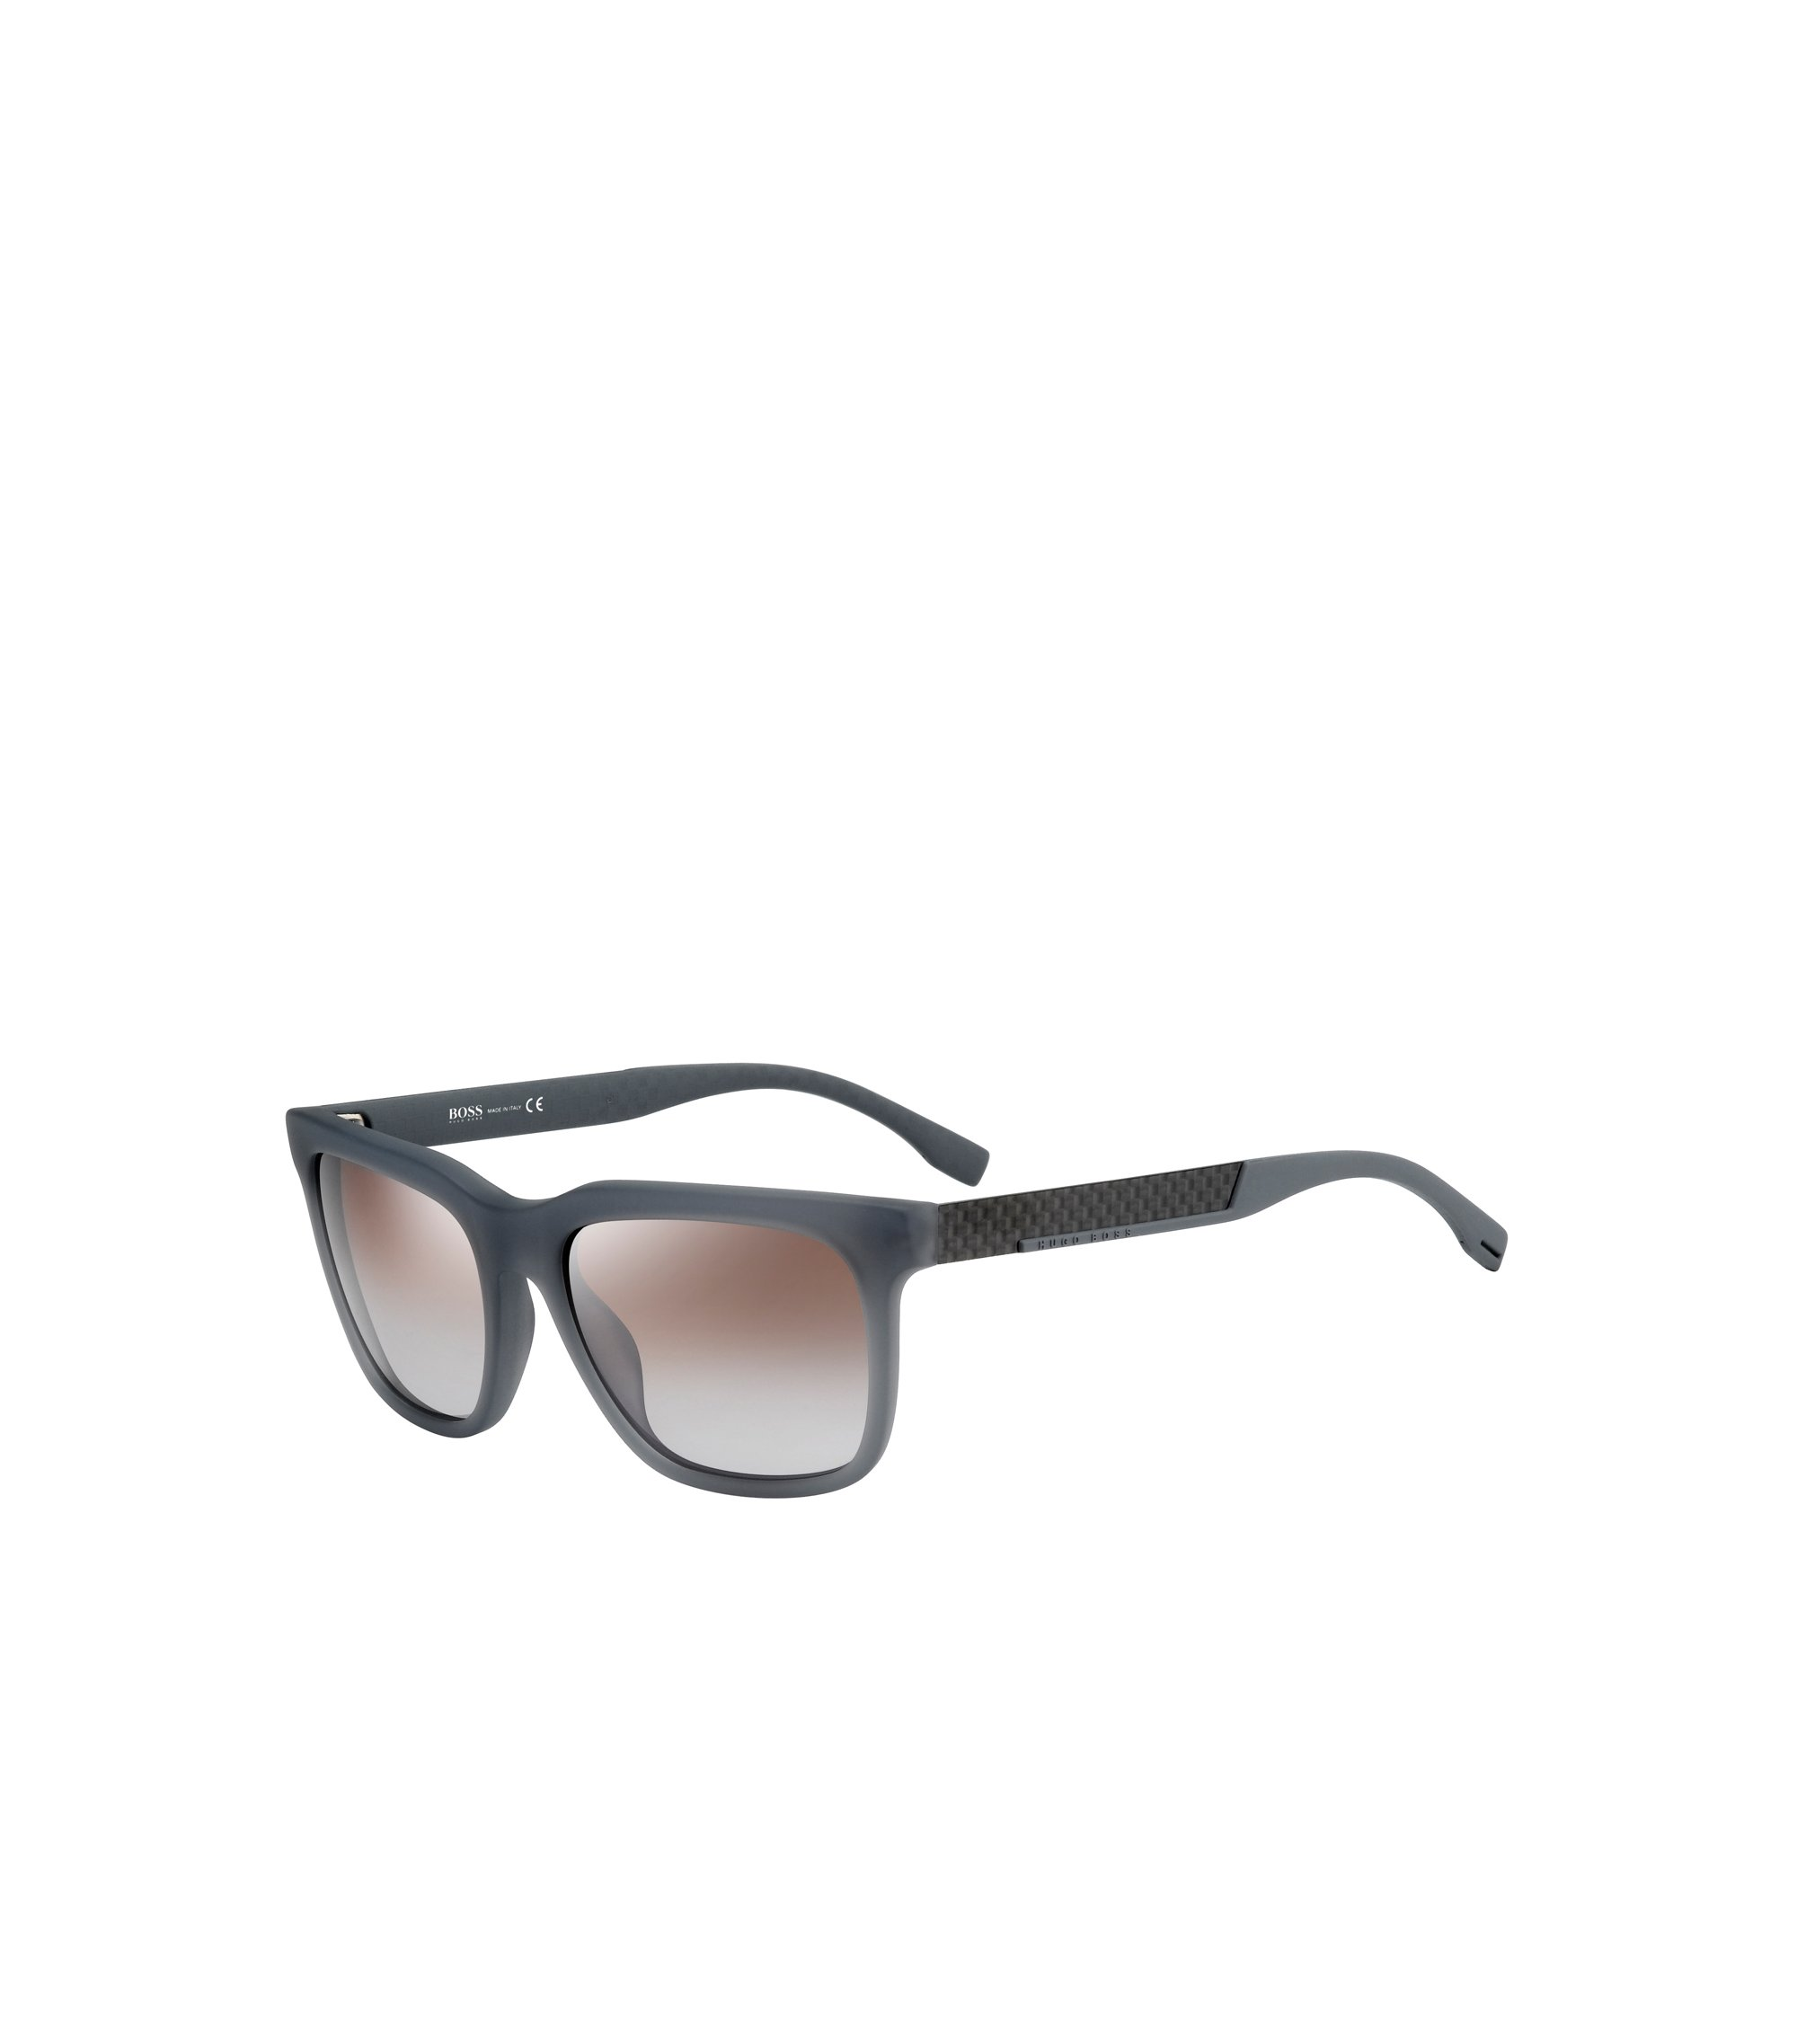 Gradient Lens Rectangular Sunglasses | BOSS 0670S, Assorted-Pre-Pack